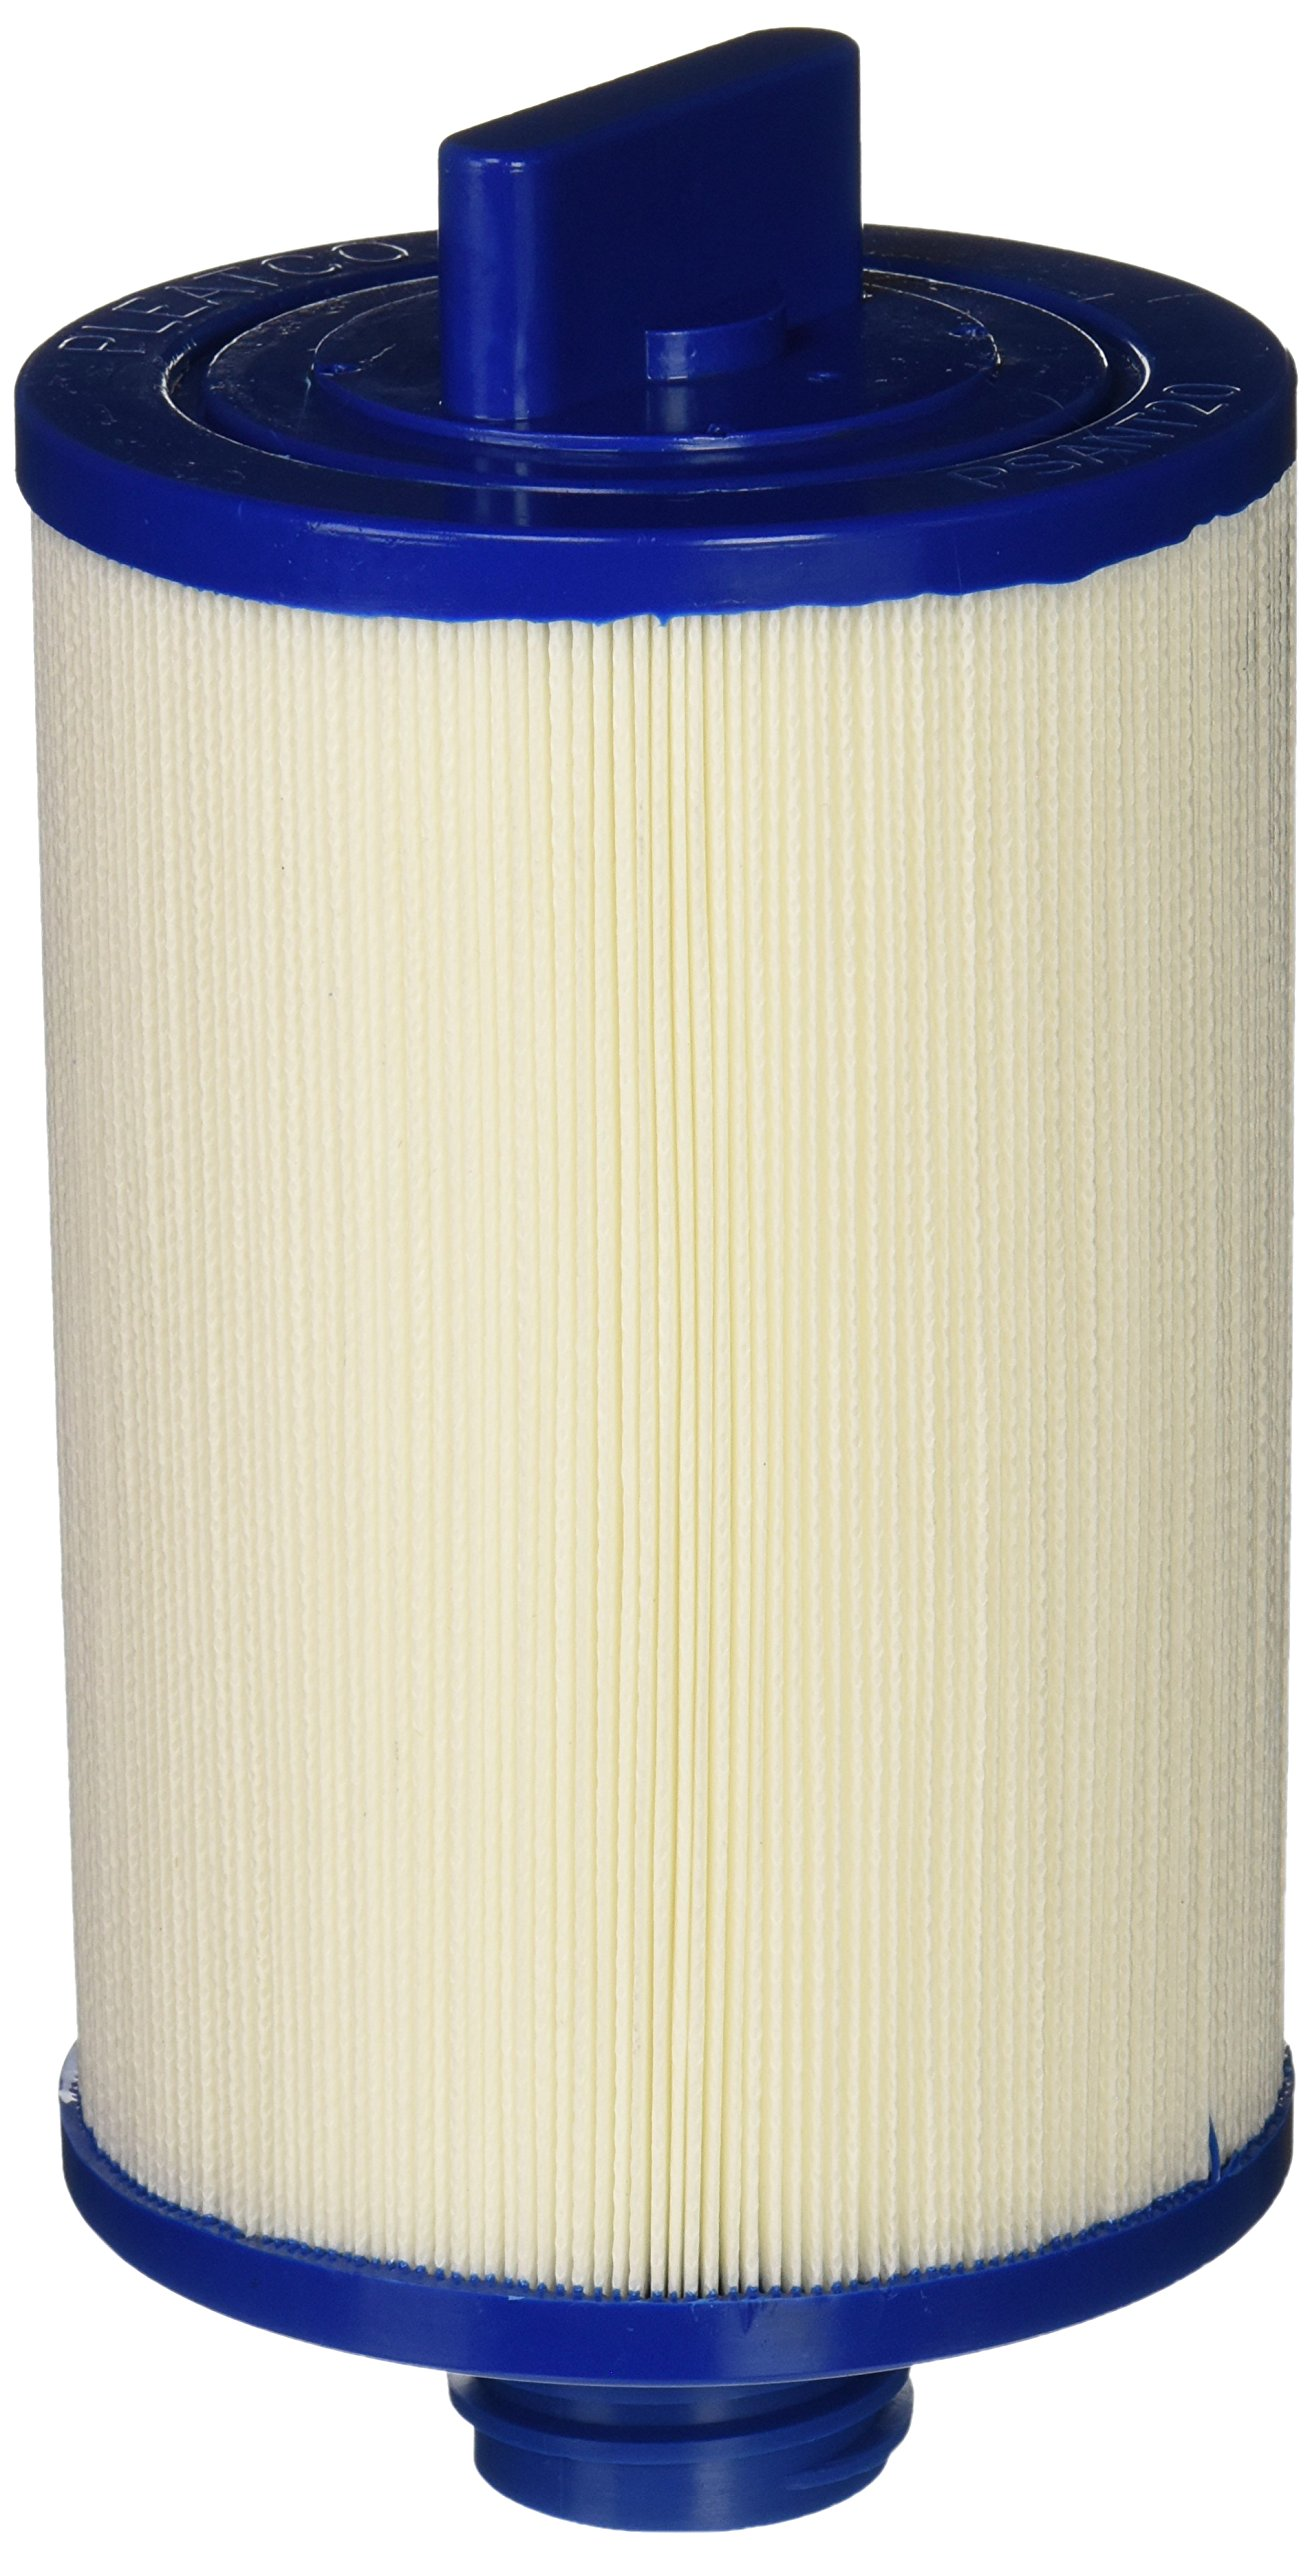 Pleatco PSANT20P3 Replacement Cartridge for Futura Spa (Strong Industries) Antigua, 1 Cartridge by Pleatco